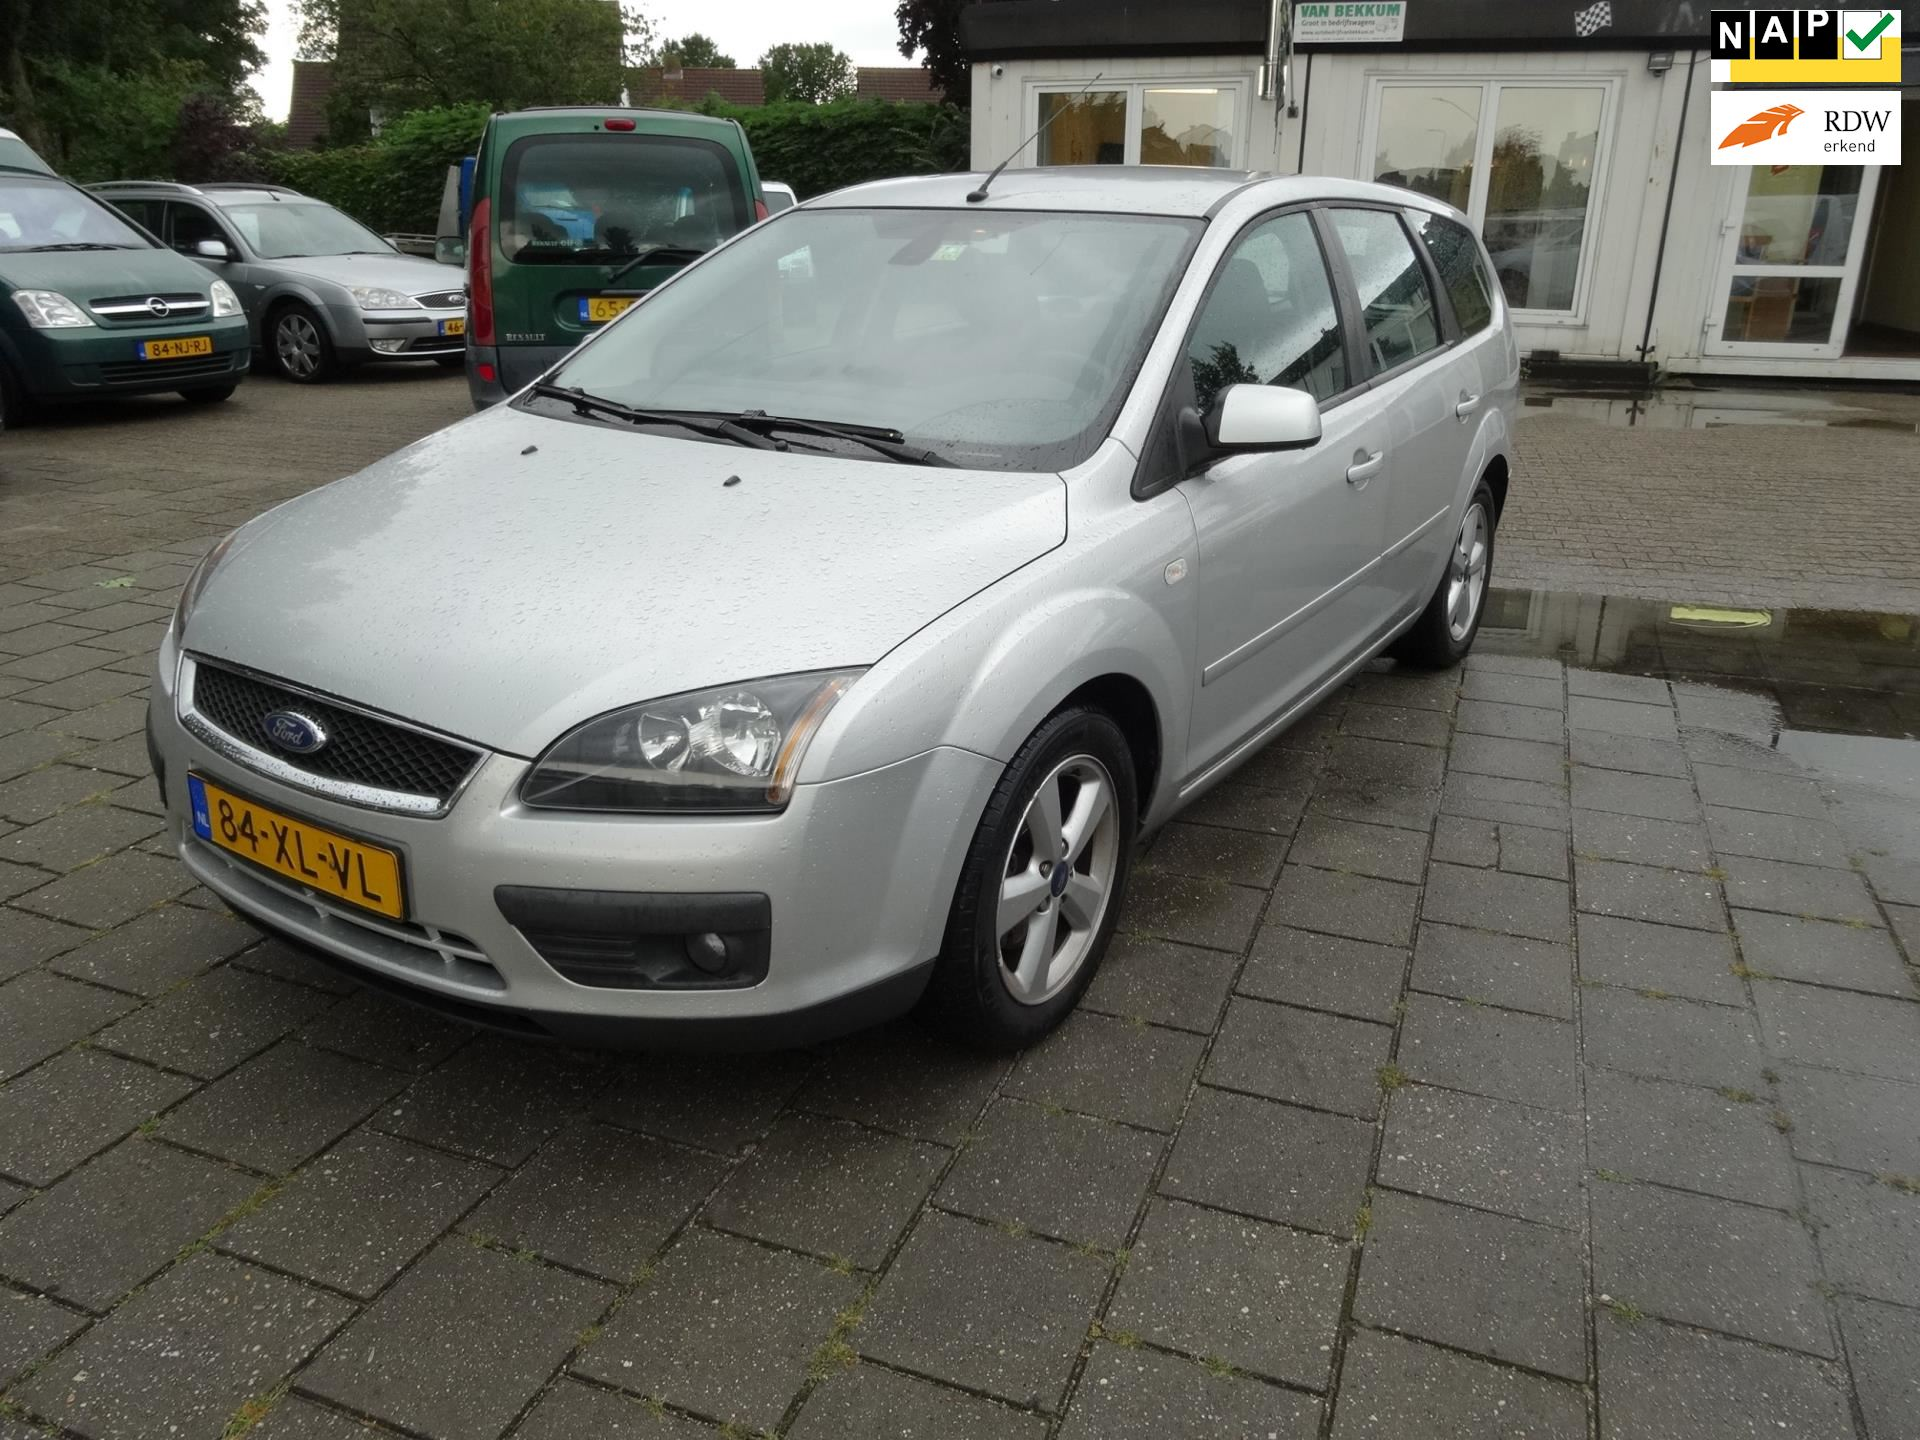 Ford Focus Wagon occasion - Handelsonderneming M.A.C.